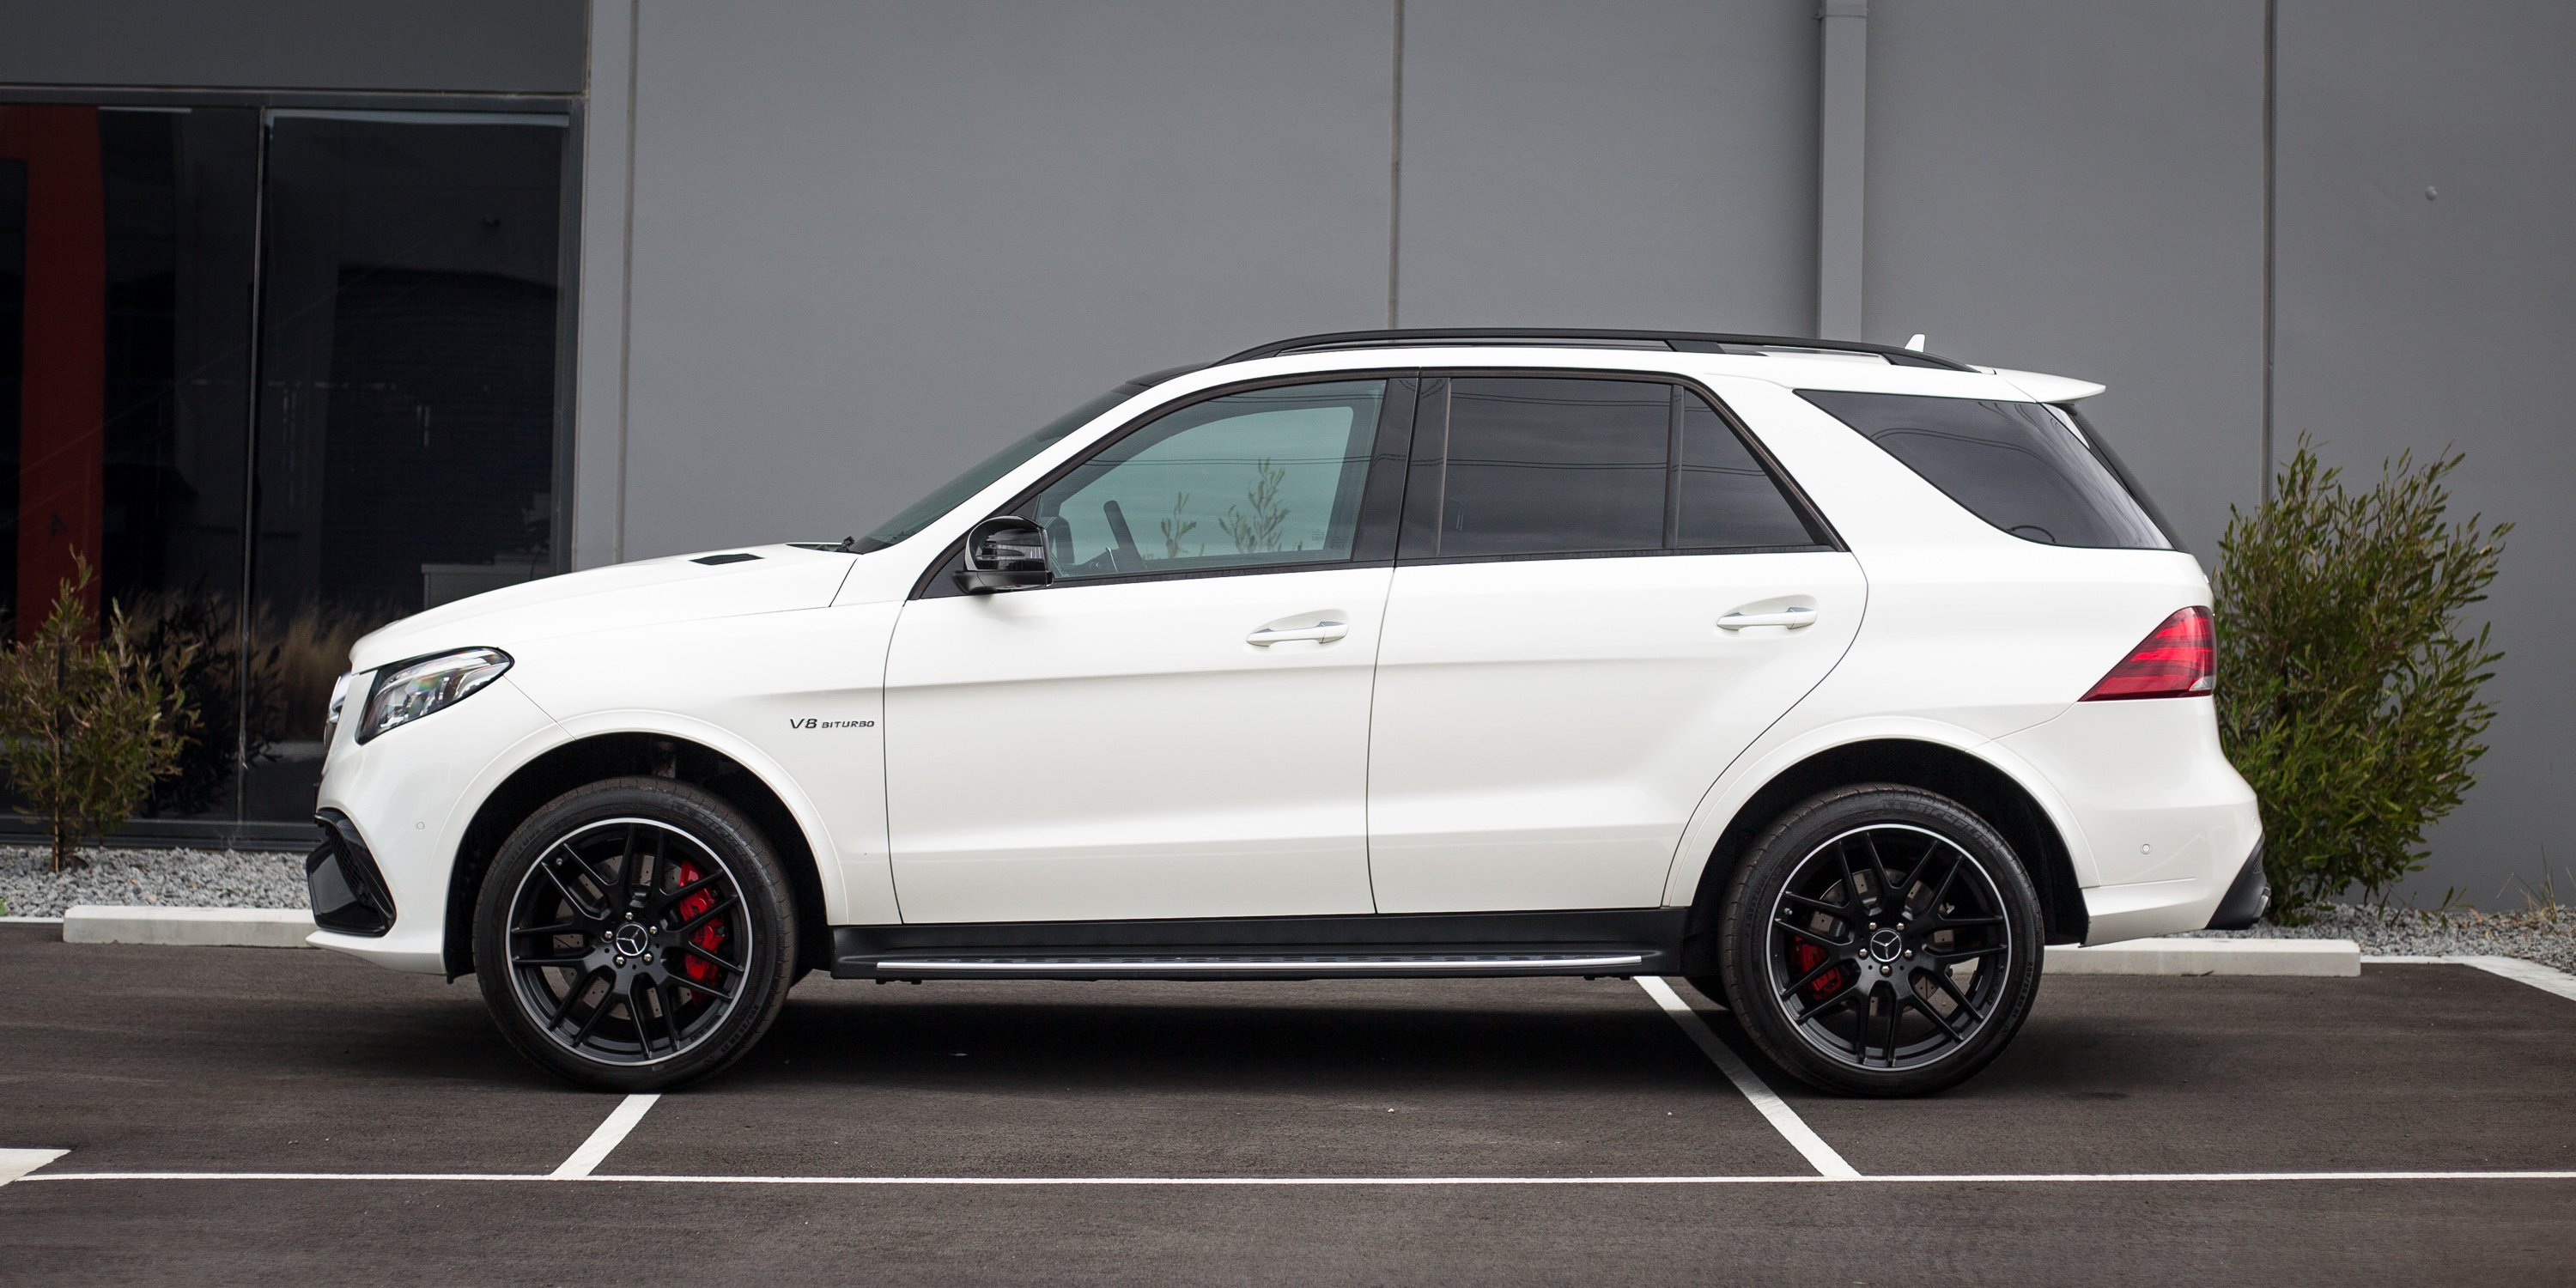 mercedes amg gle63 s 4matic mercedes benz. Black Bedroom Furniture Sets. Home Design Ideas